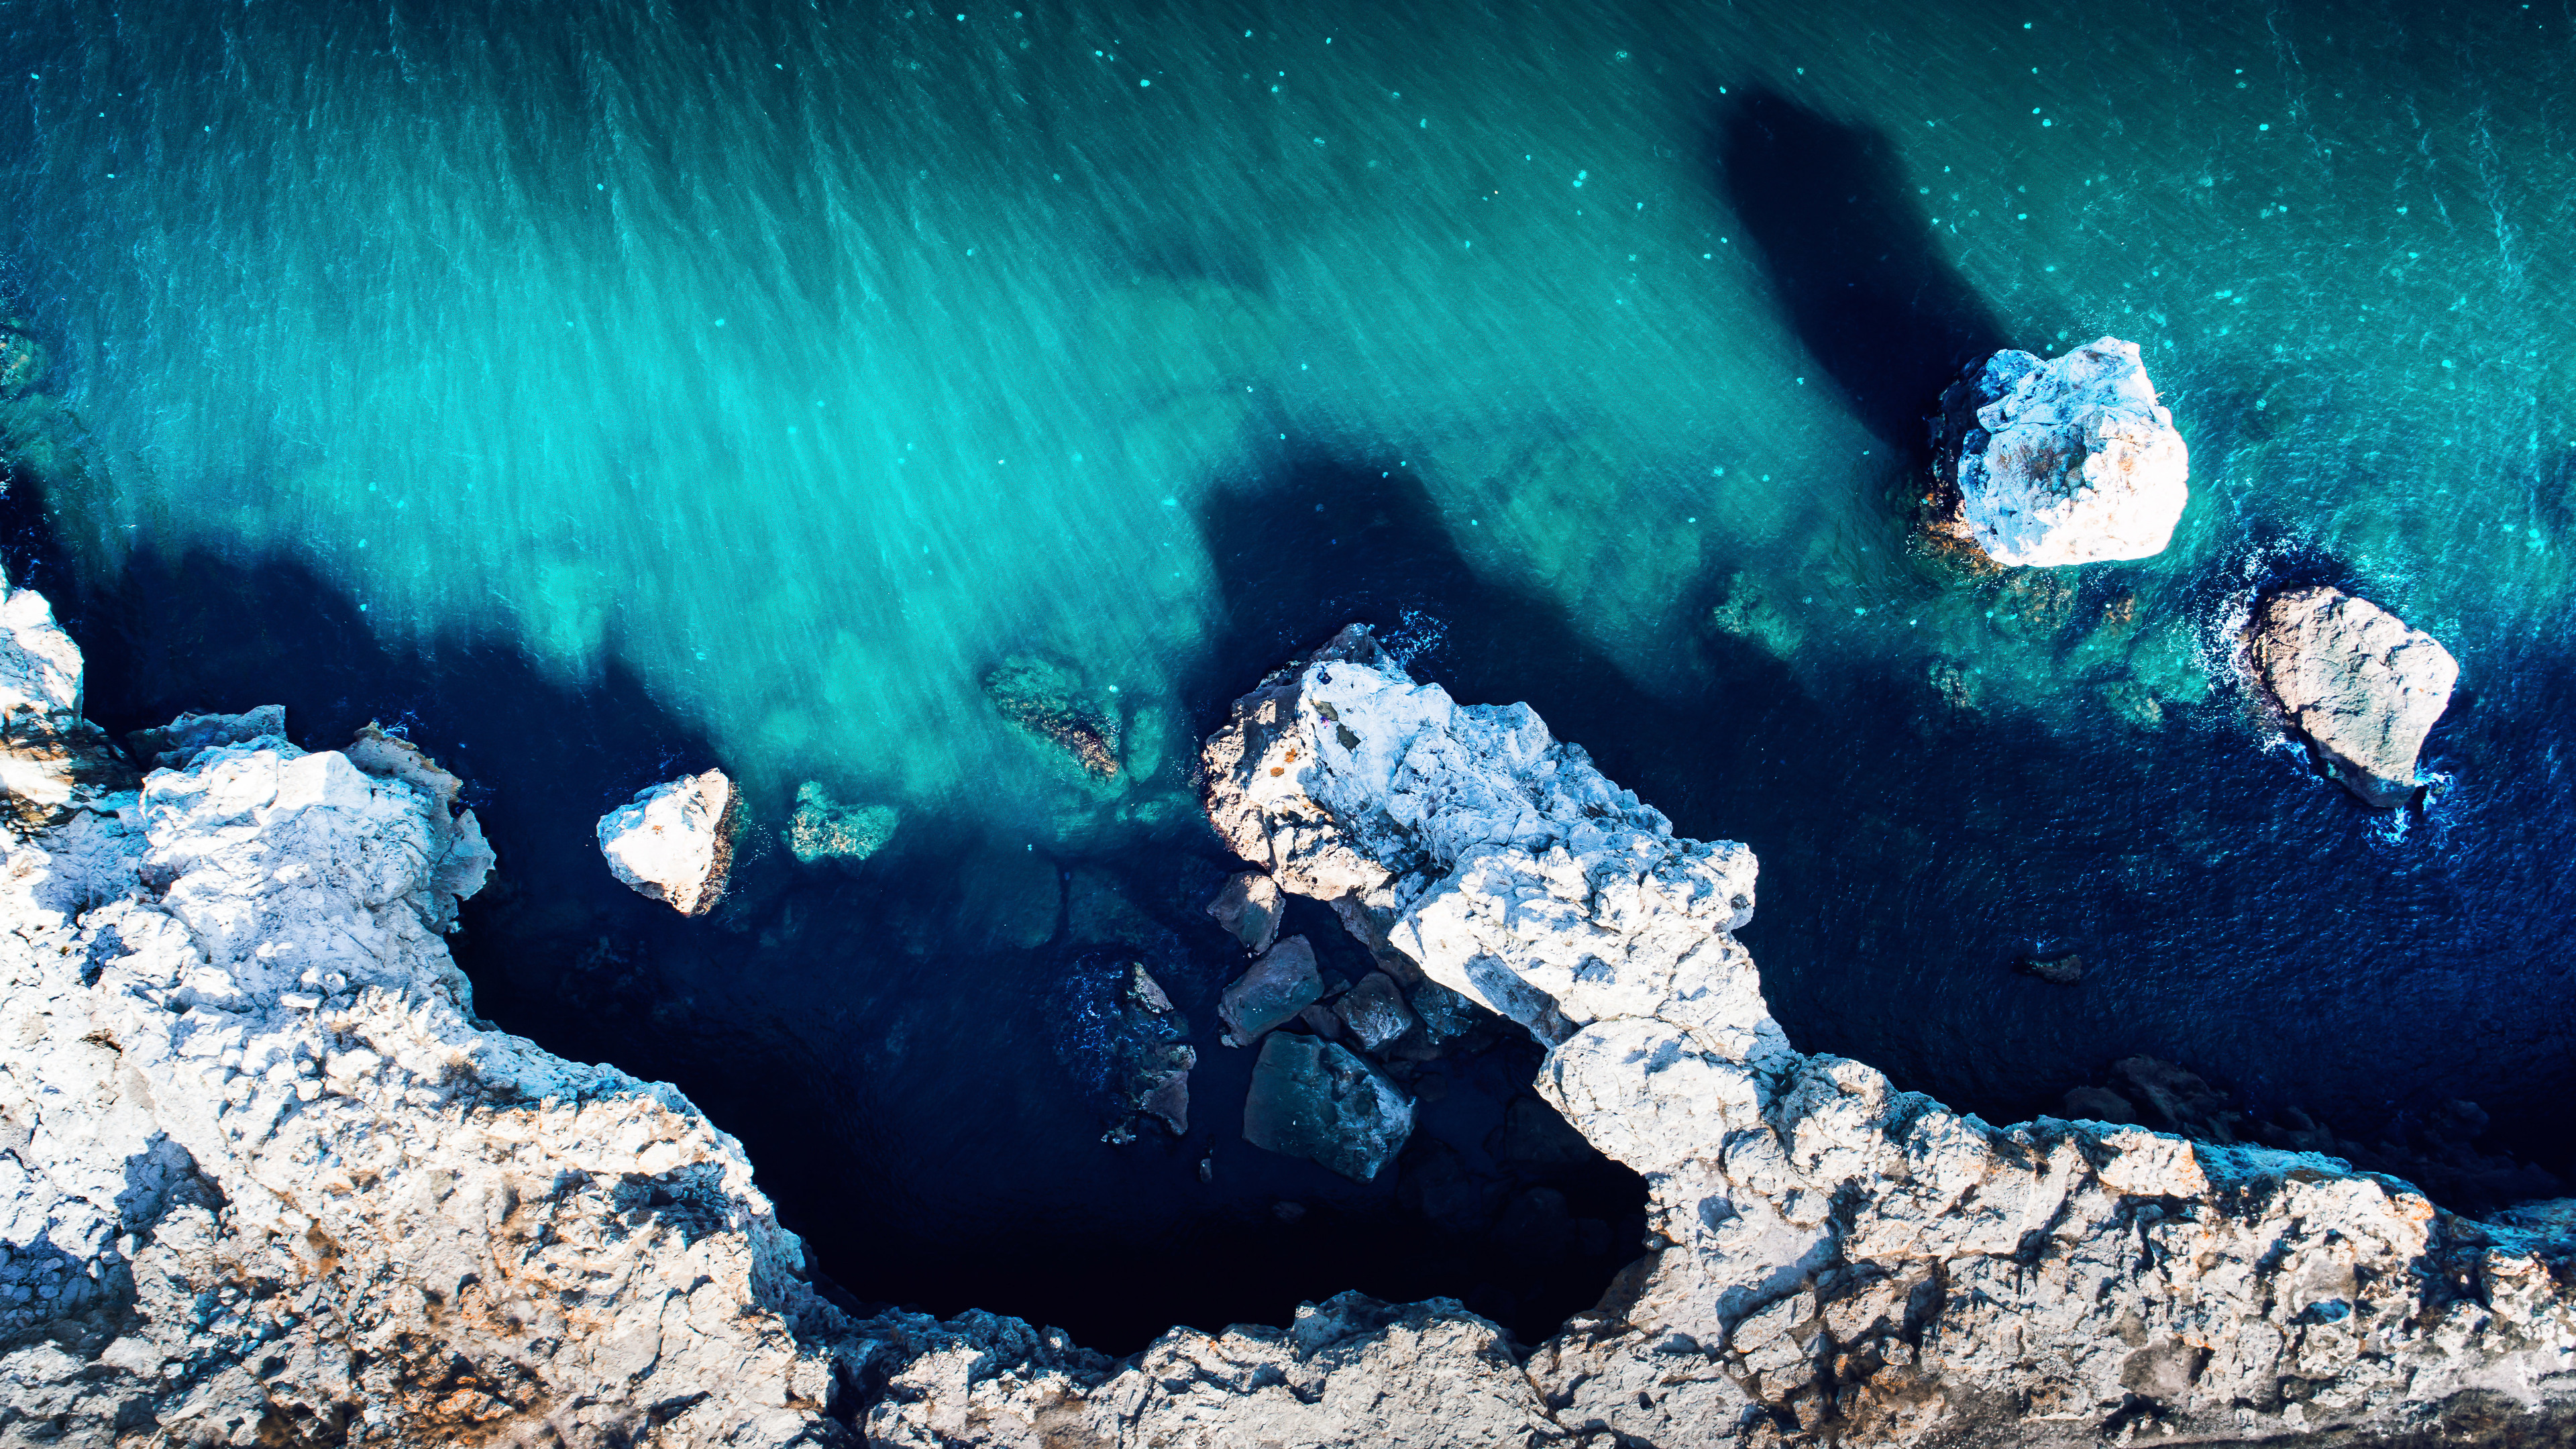 aerial drone island beach view 4k 1551644072 - Aerial Drone Island Beach View 4k - photography wallpapers, nature wallpapers, island wallpapers, hd-wallpapers, drone view wallpapers, beach wallpapers, aerial wallpapers, 4k-wallpapers